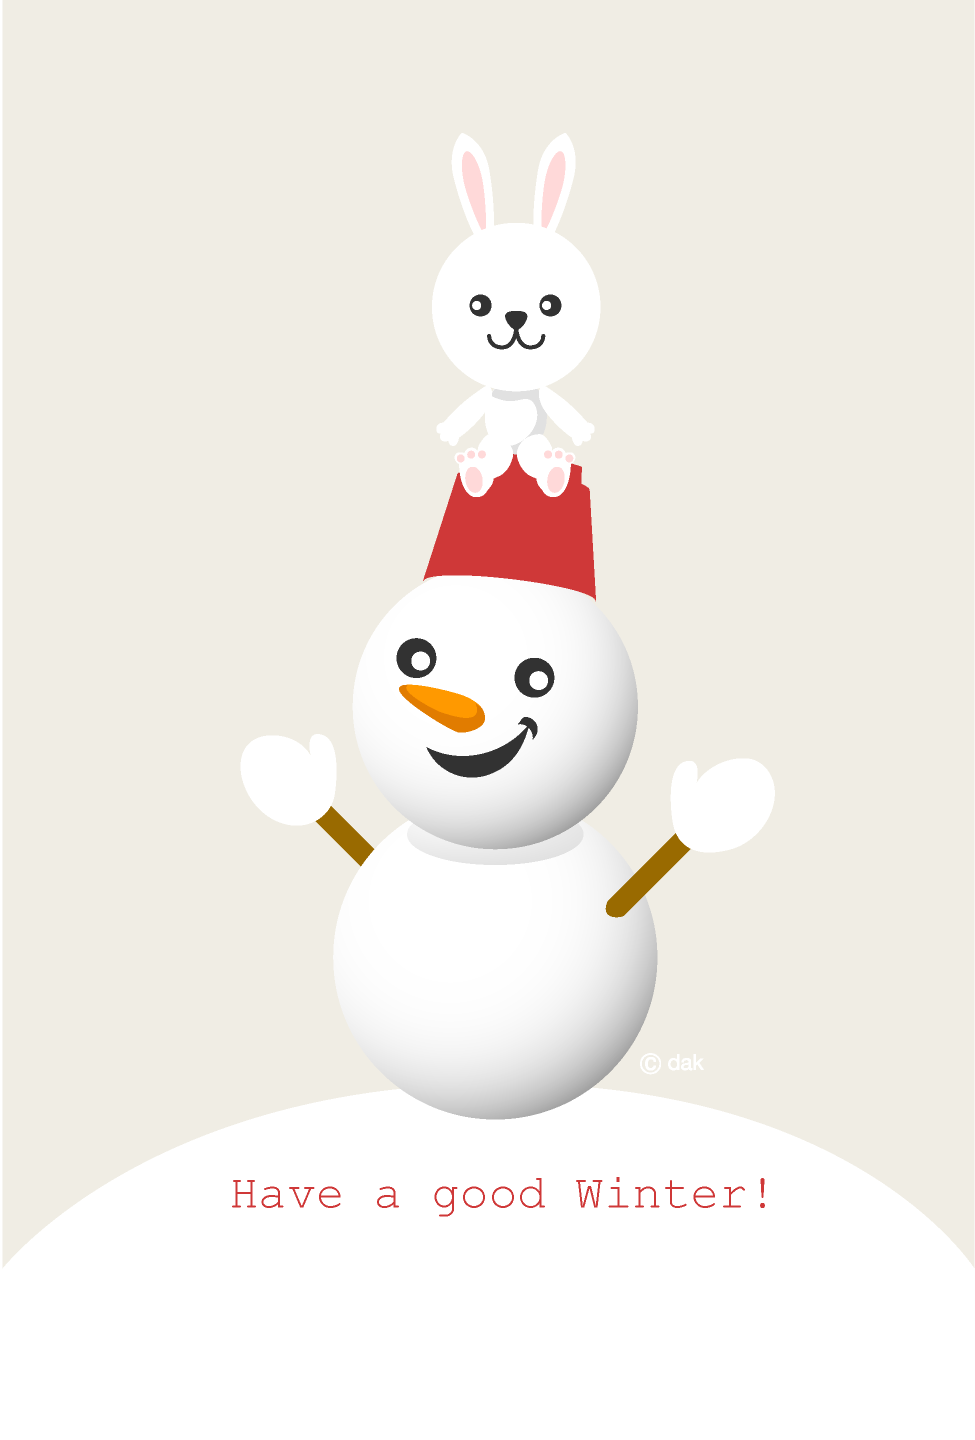 Cute rabbit and snowman winter greeting card